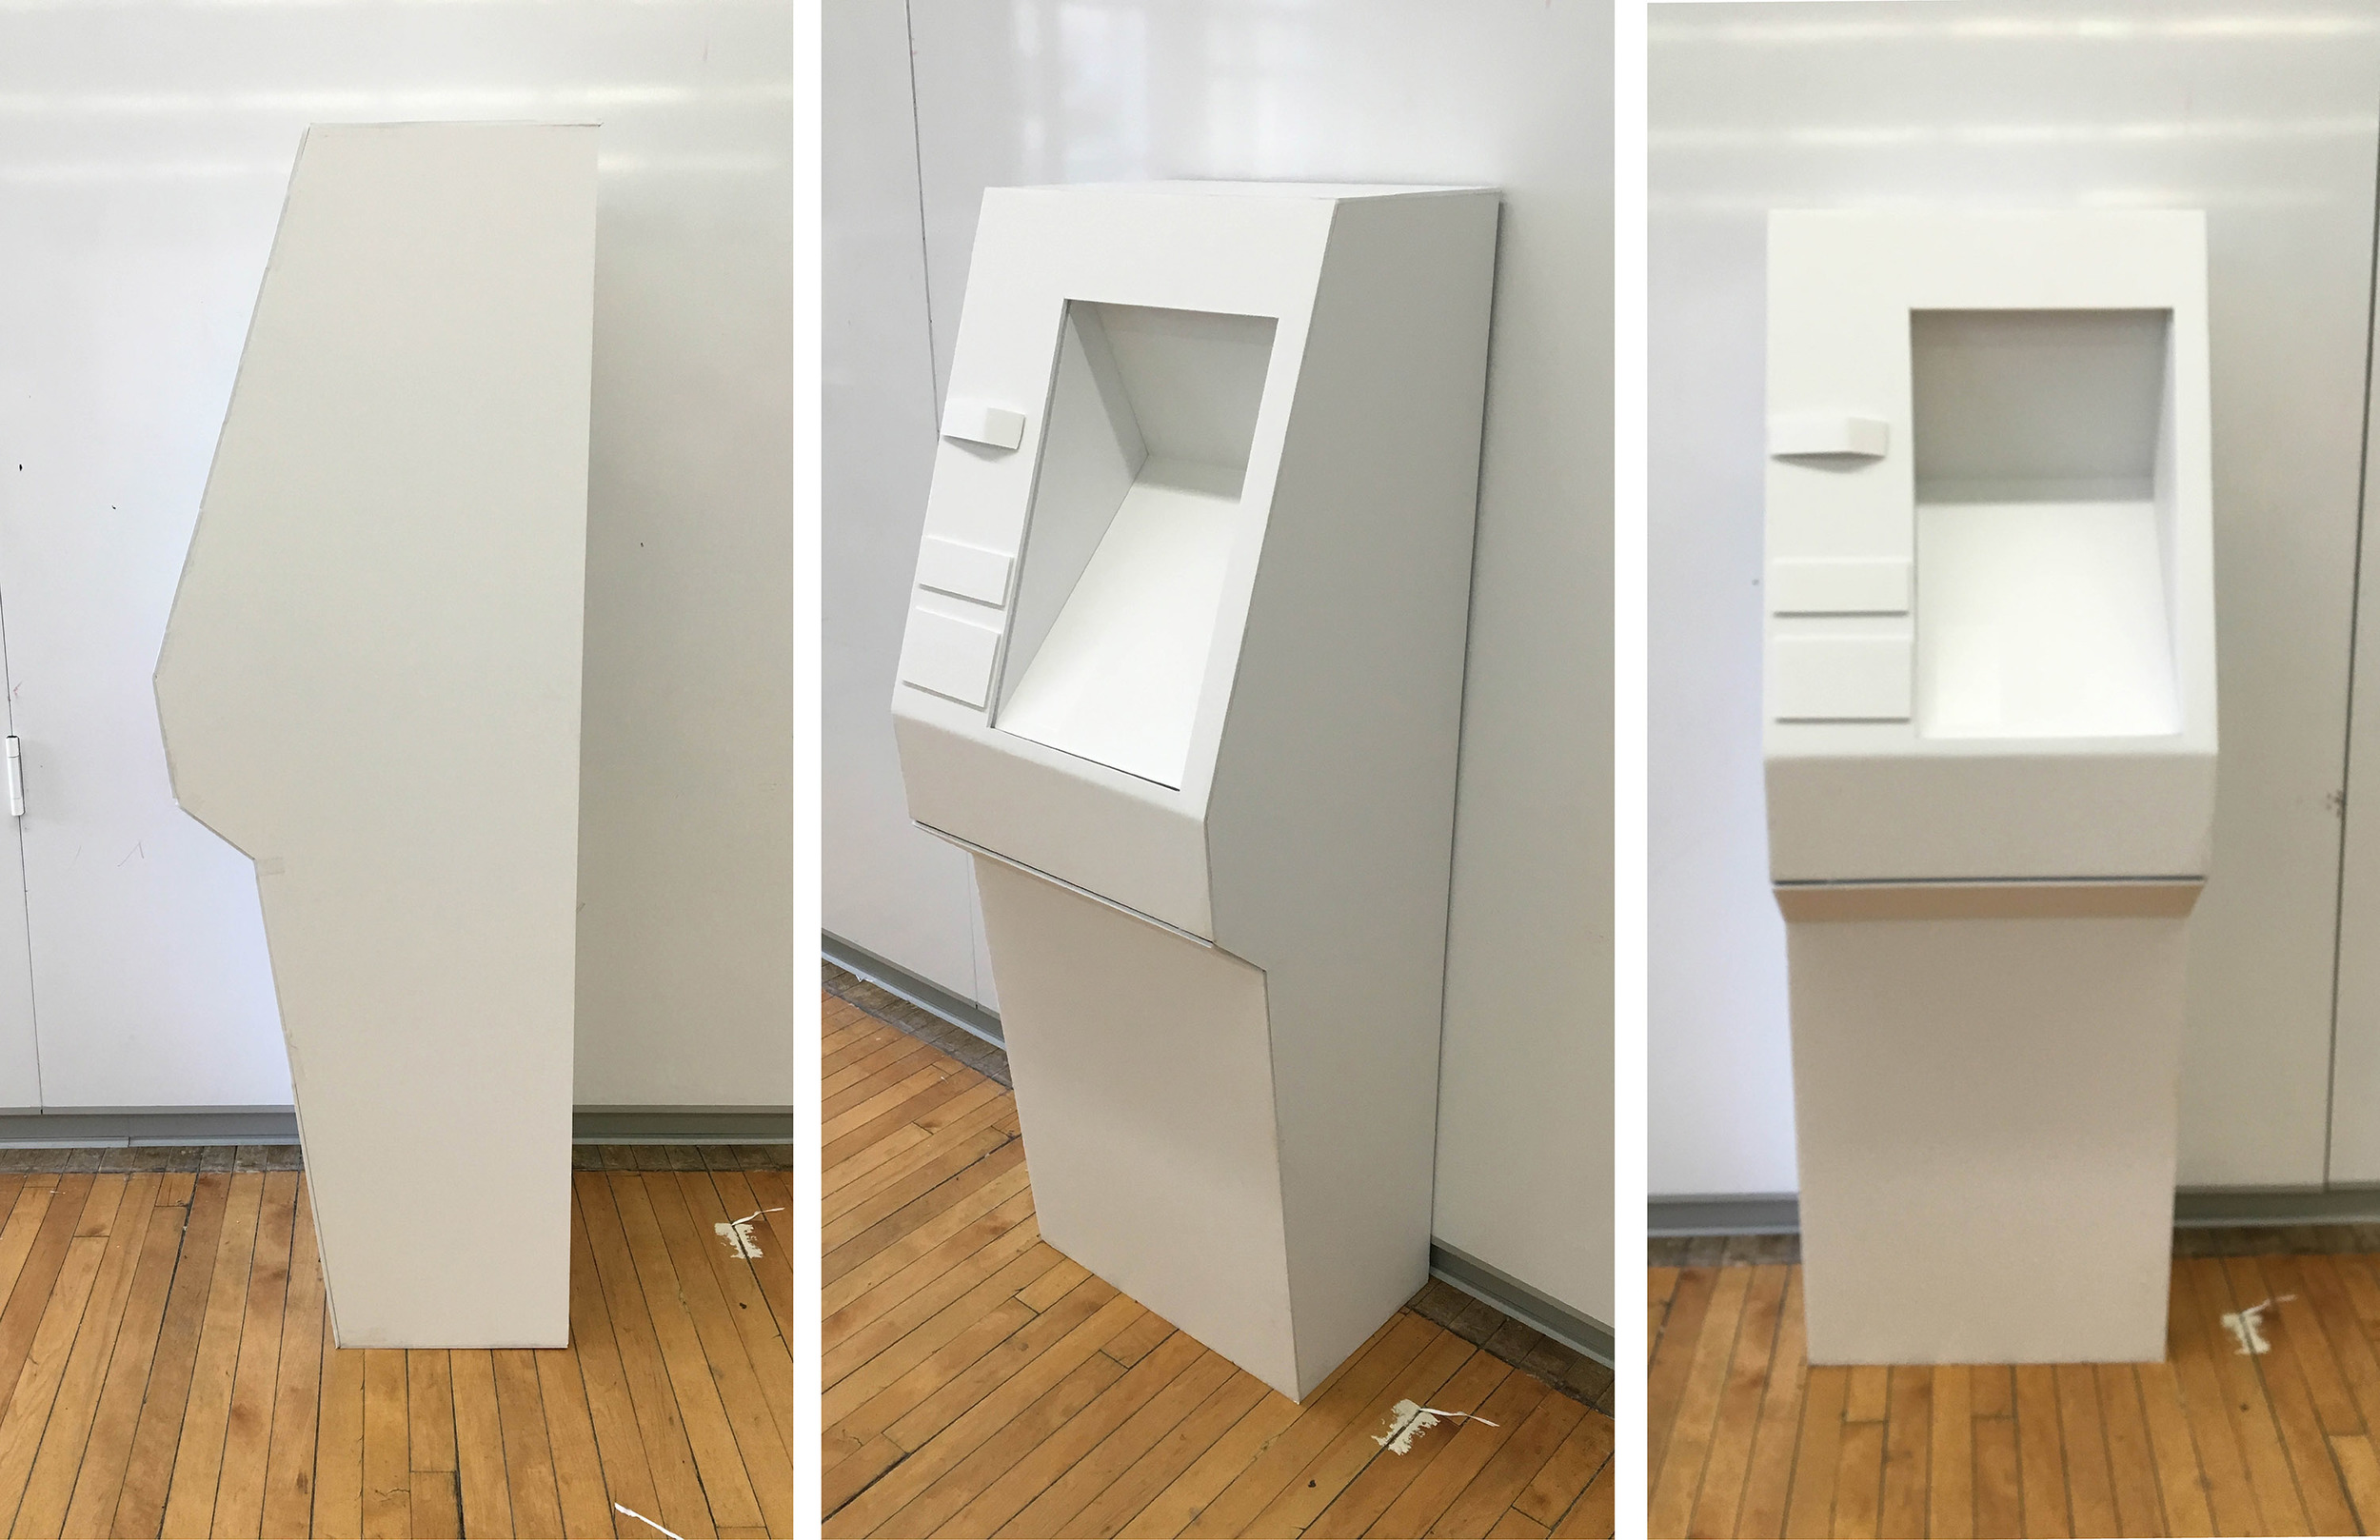 Final Full Scale Model  Model most accurate to proportions to final design: accurate heights for wheelchair accessibility, blind accessibility, and comfortable screen/dashboard angles for all users. This model has transparent braille plastic labels instead of white cardstock, closer to the final design of the ATM. The form of this model is a more refined, compact version of the former.